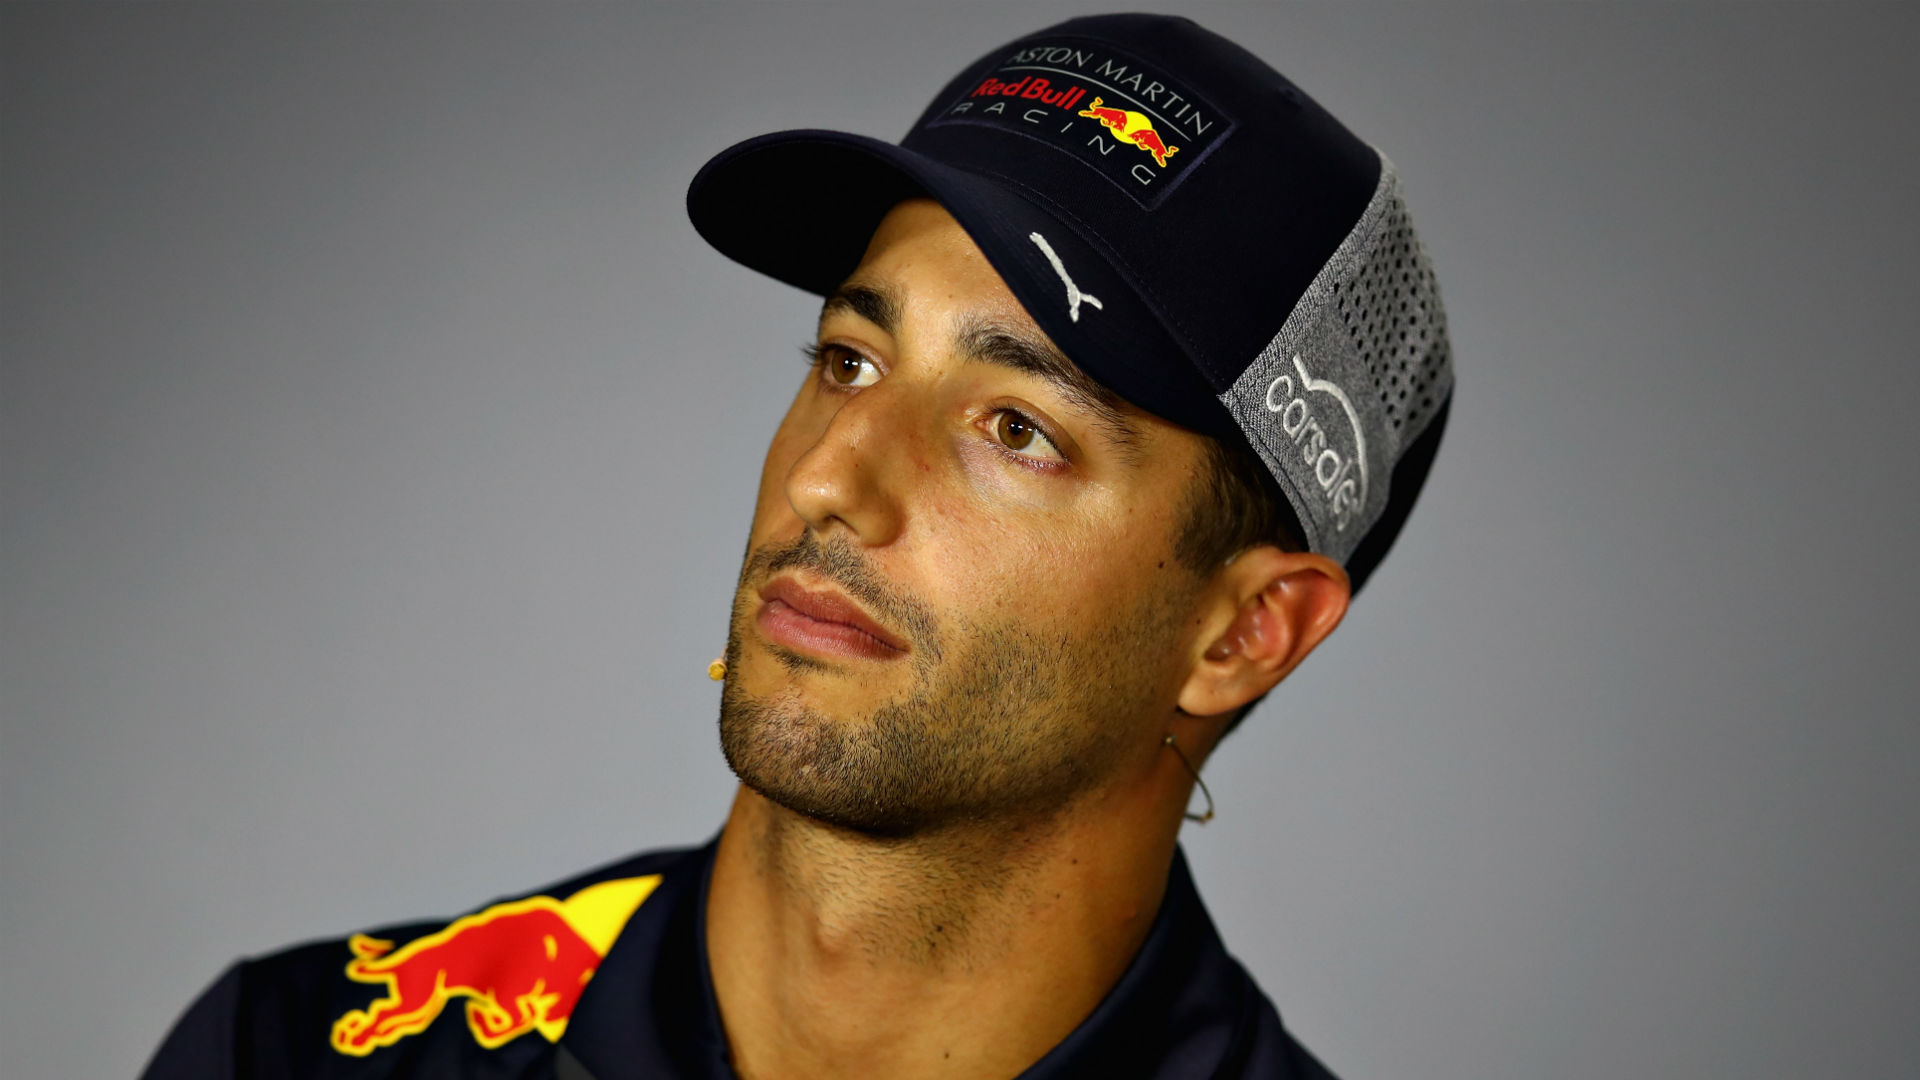 Ricciardo dismisses Ferrari talk